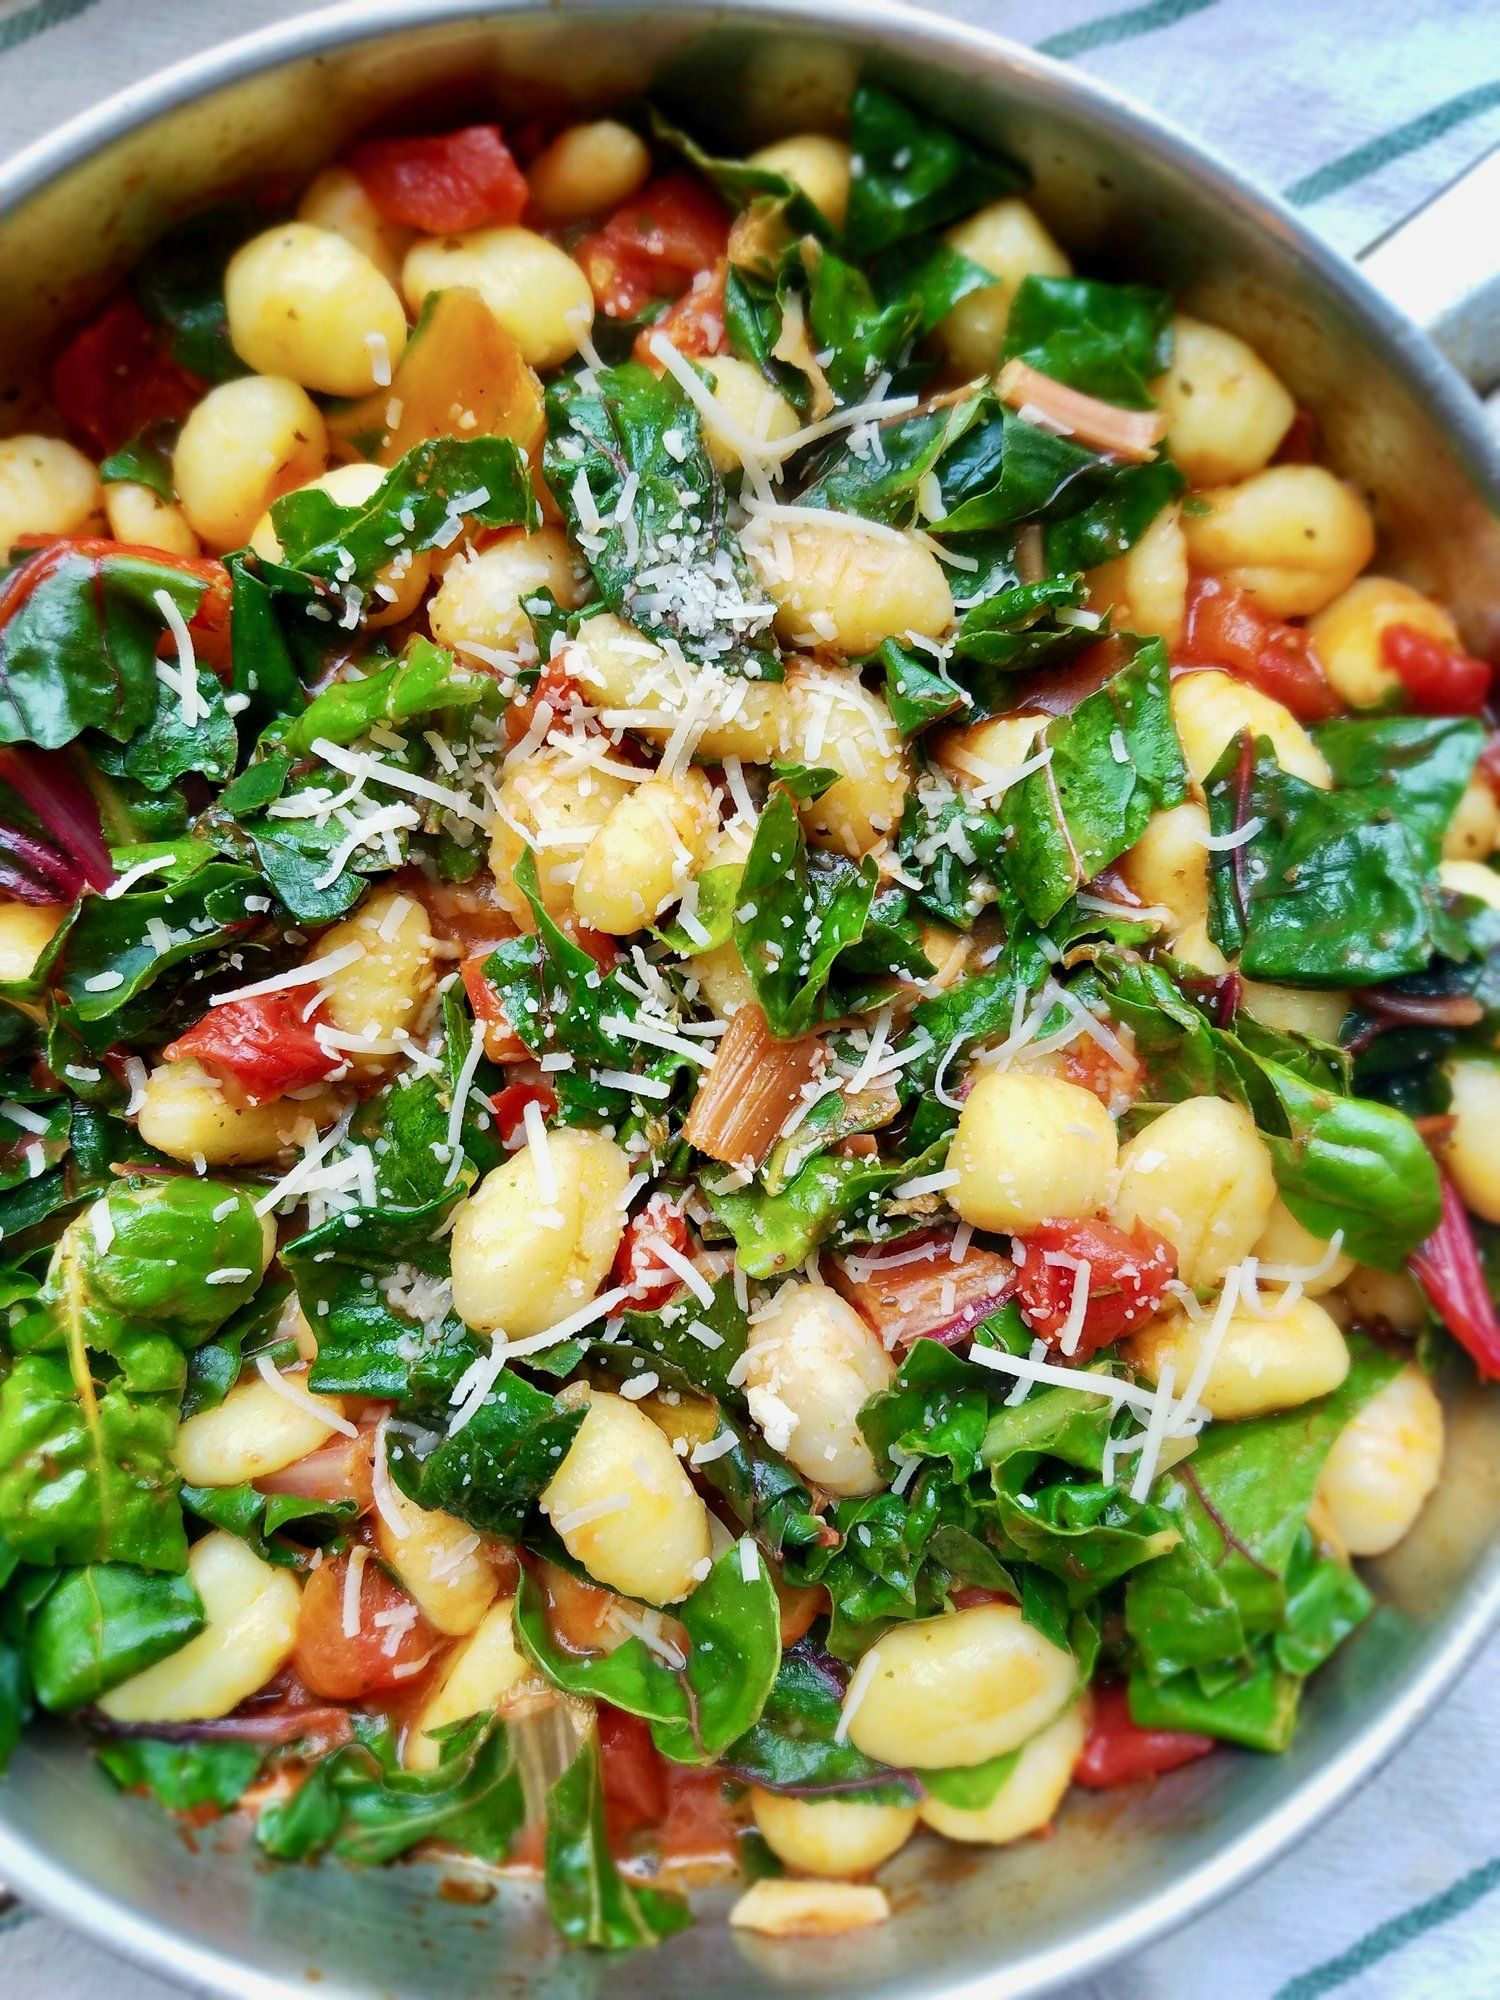 Gnocchi With Swiss Chard And Tomatoes Food Gnocchi